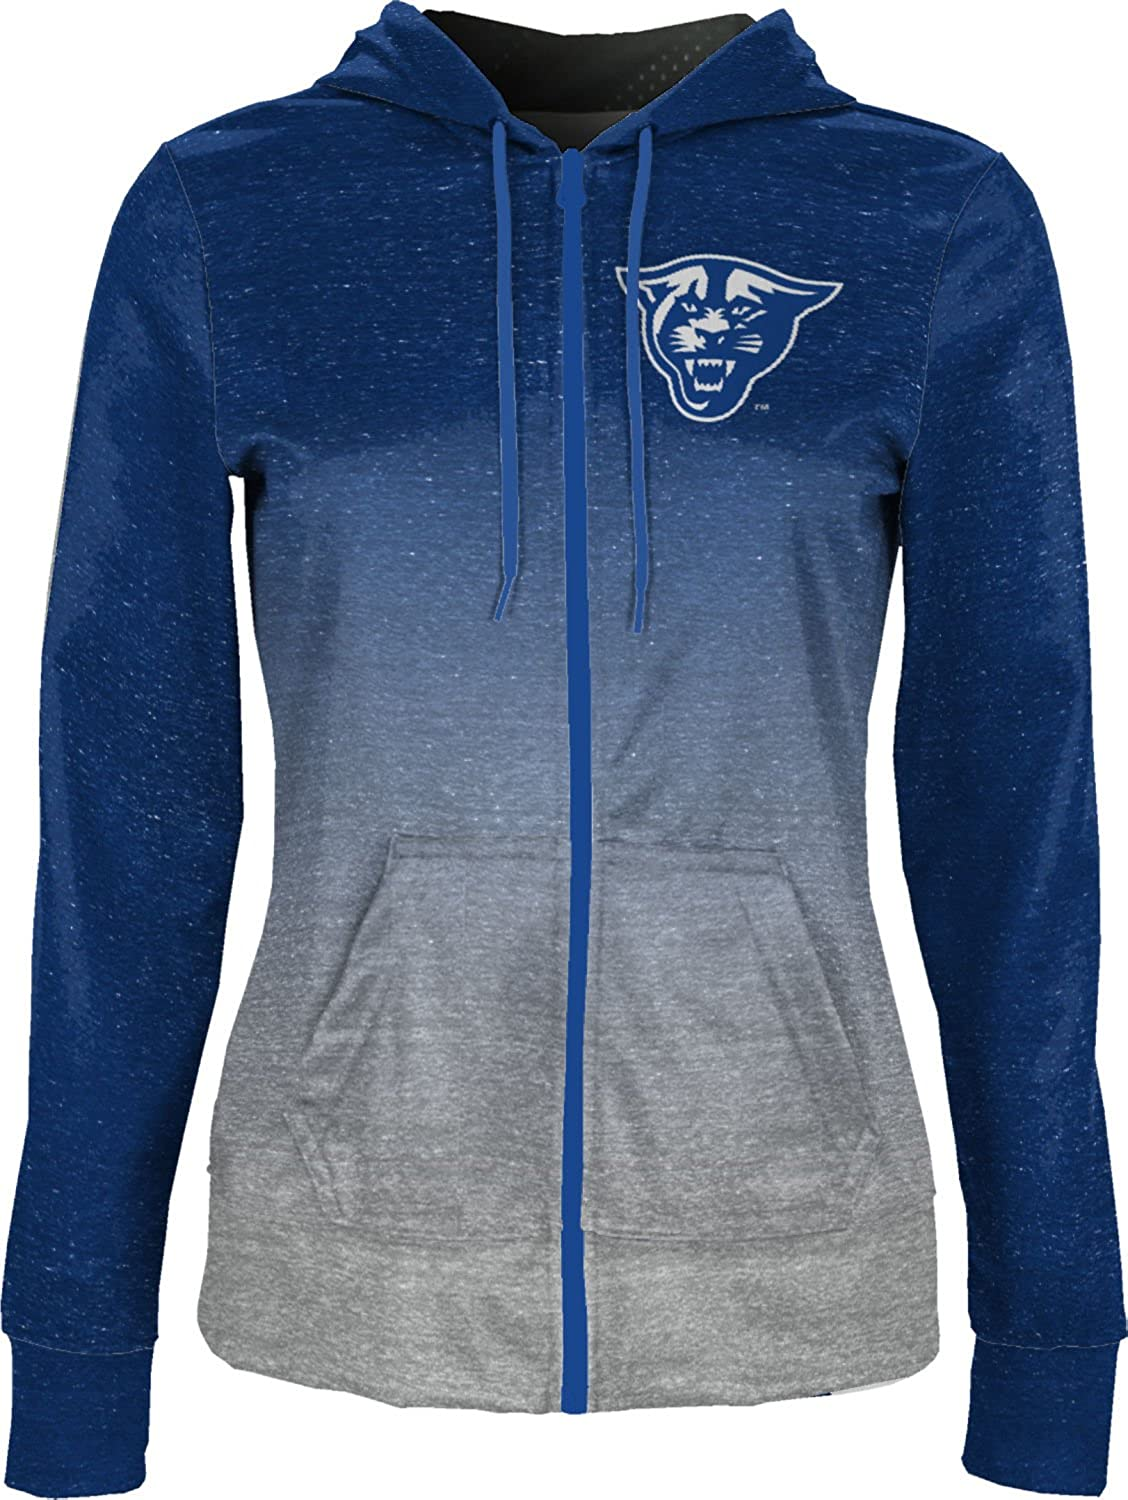 School Spirit Sweatshirt Georgia State University Girls Zipper Hoodie Gradient